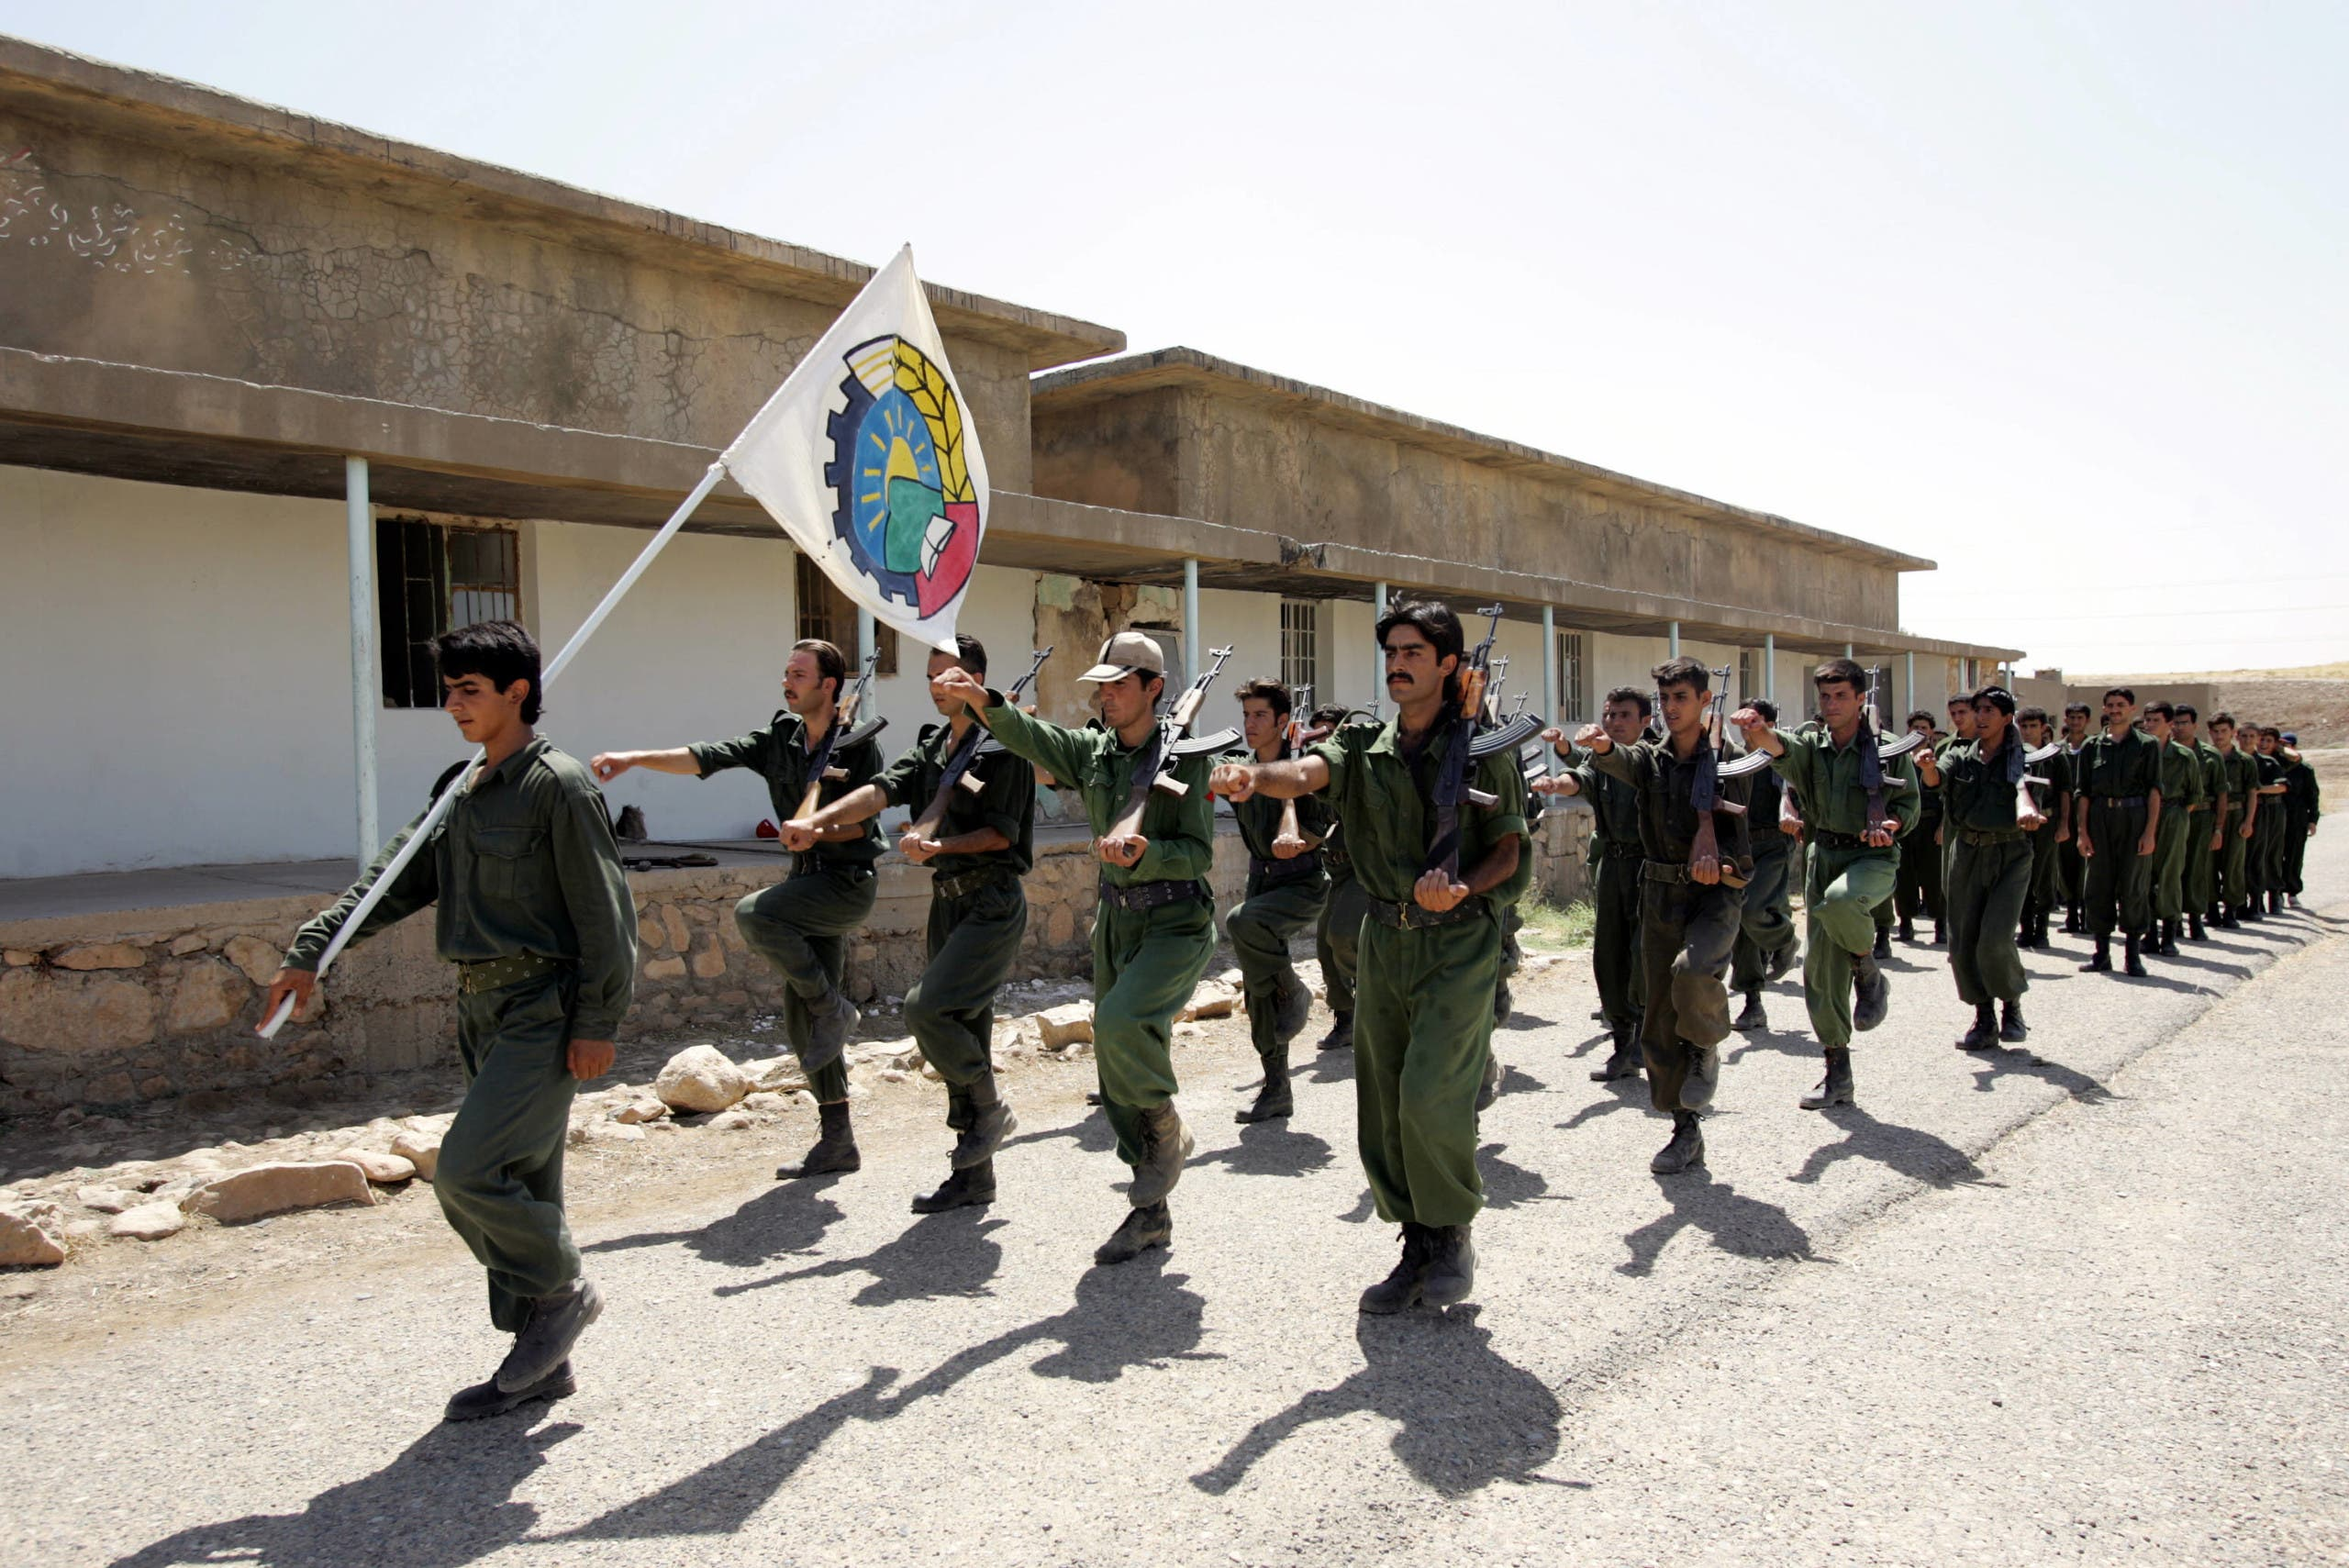 Pesmerga of the Democratic Party of Iranian Kurdistan (PDKI) march during military training at camp Koysancak in Sulaymaniyah in Iraq, 13 August 2005.  (AFP)